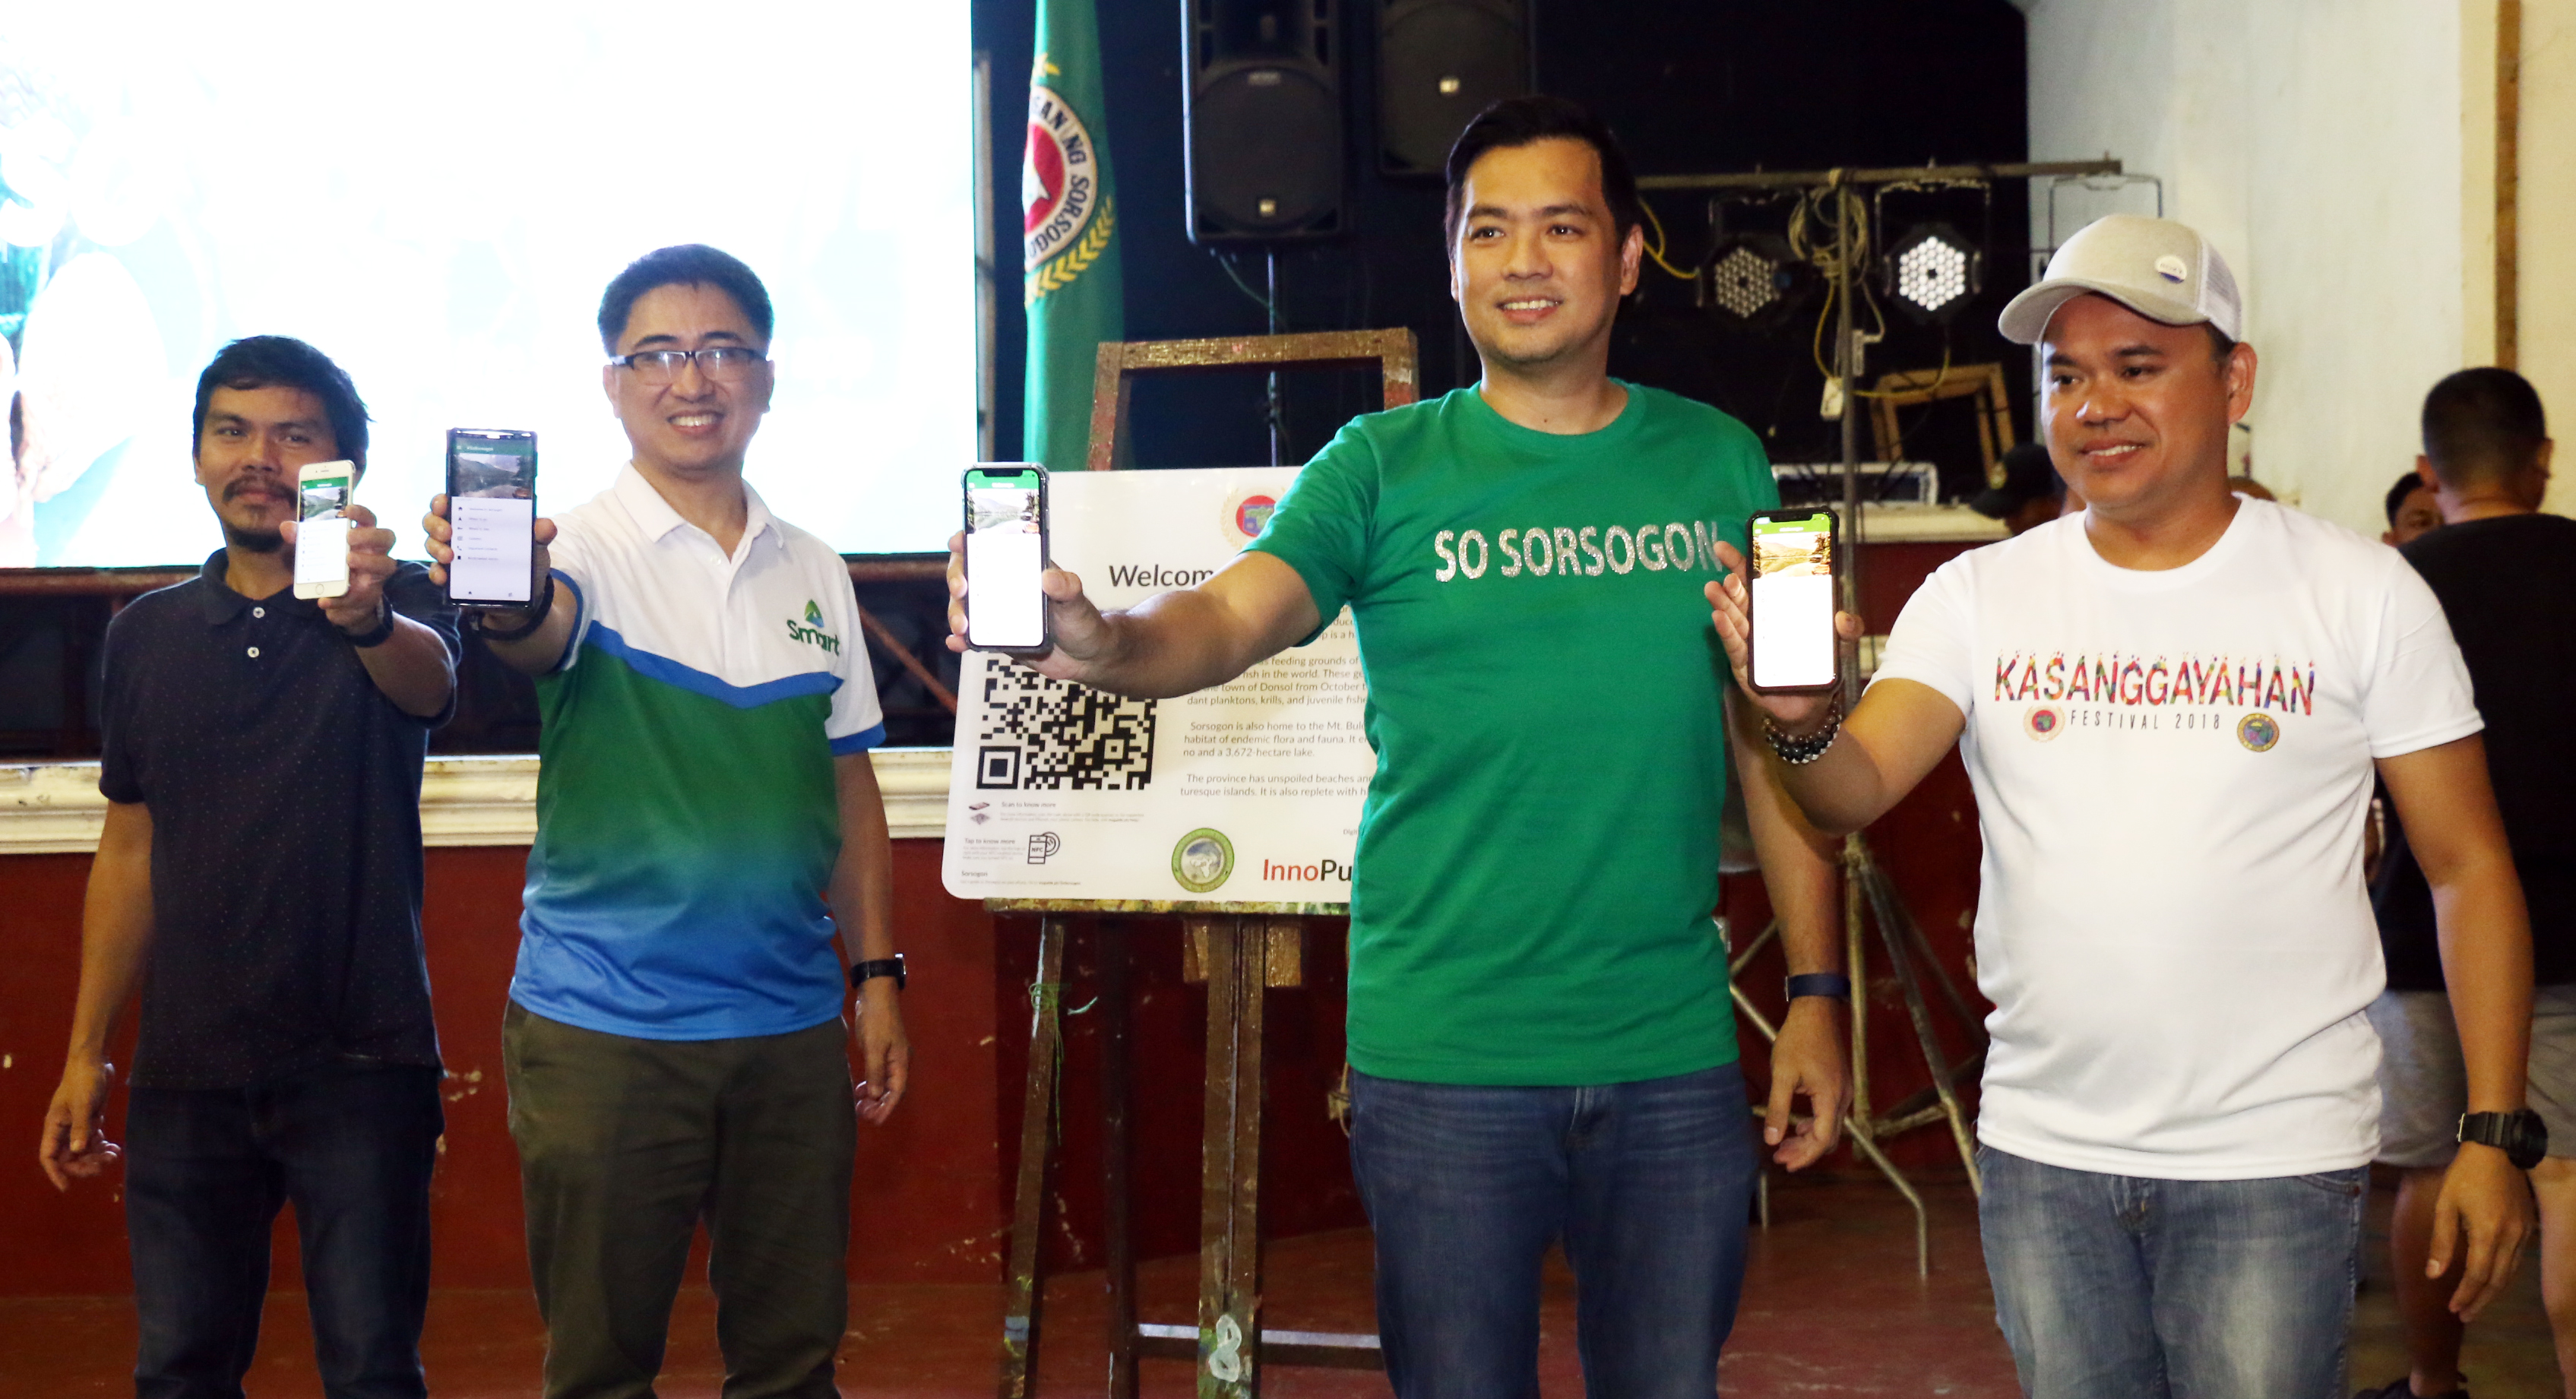 Sorsogon tourism goes digital with #SoSorsogon travel app